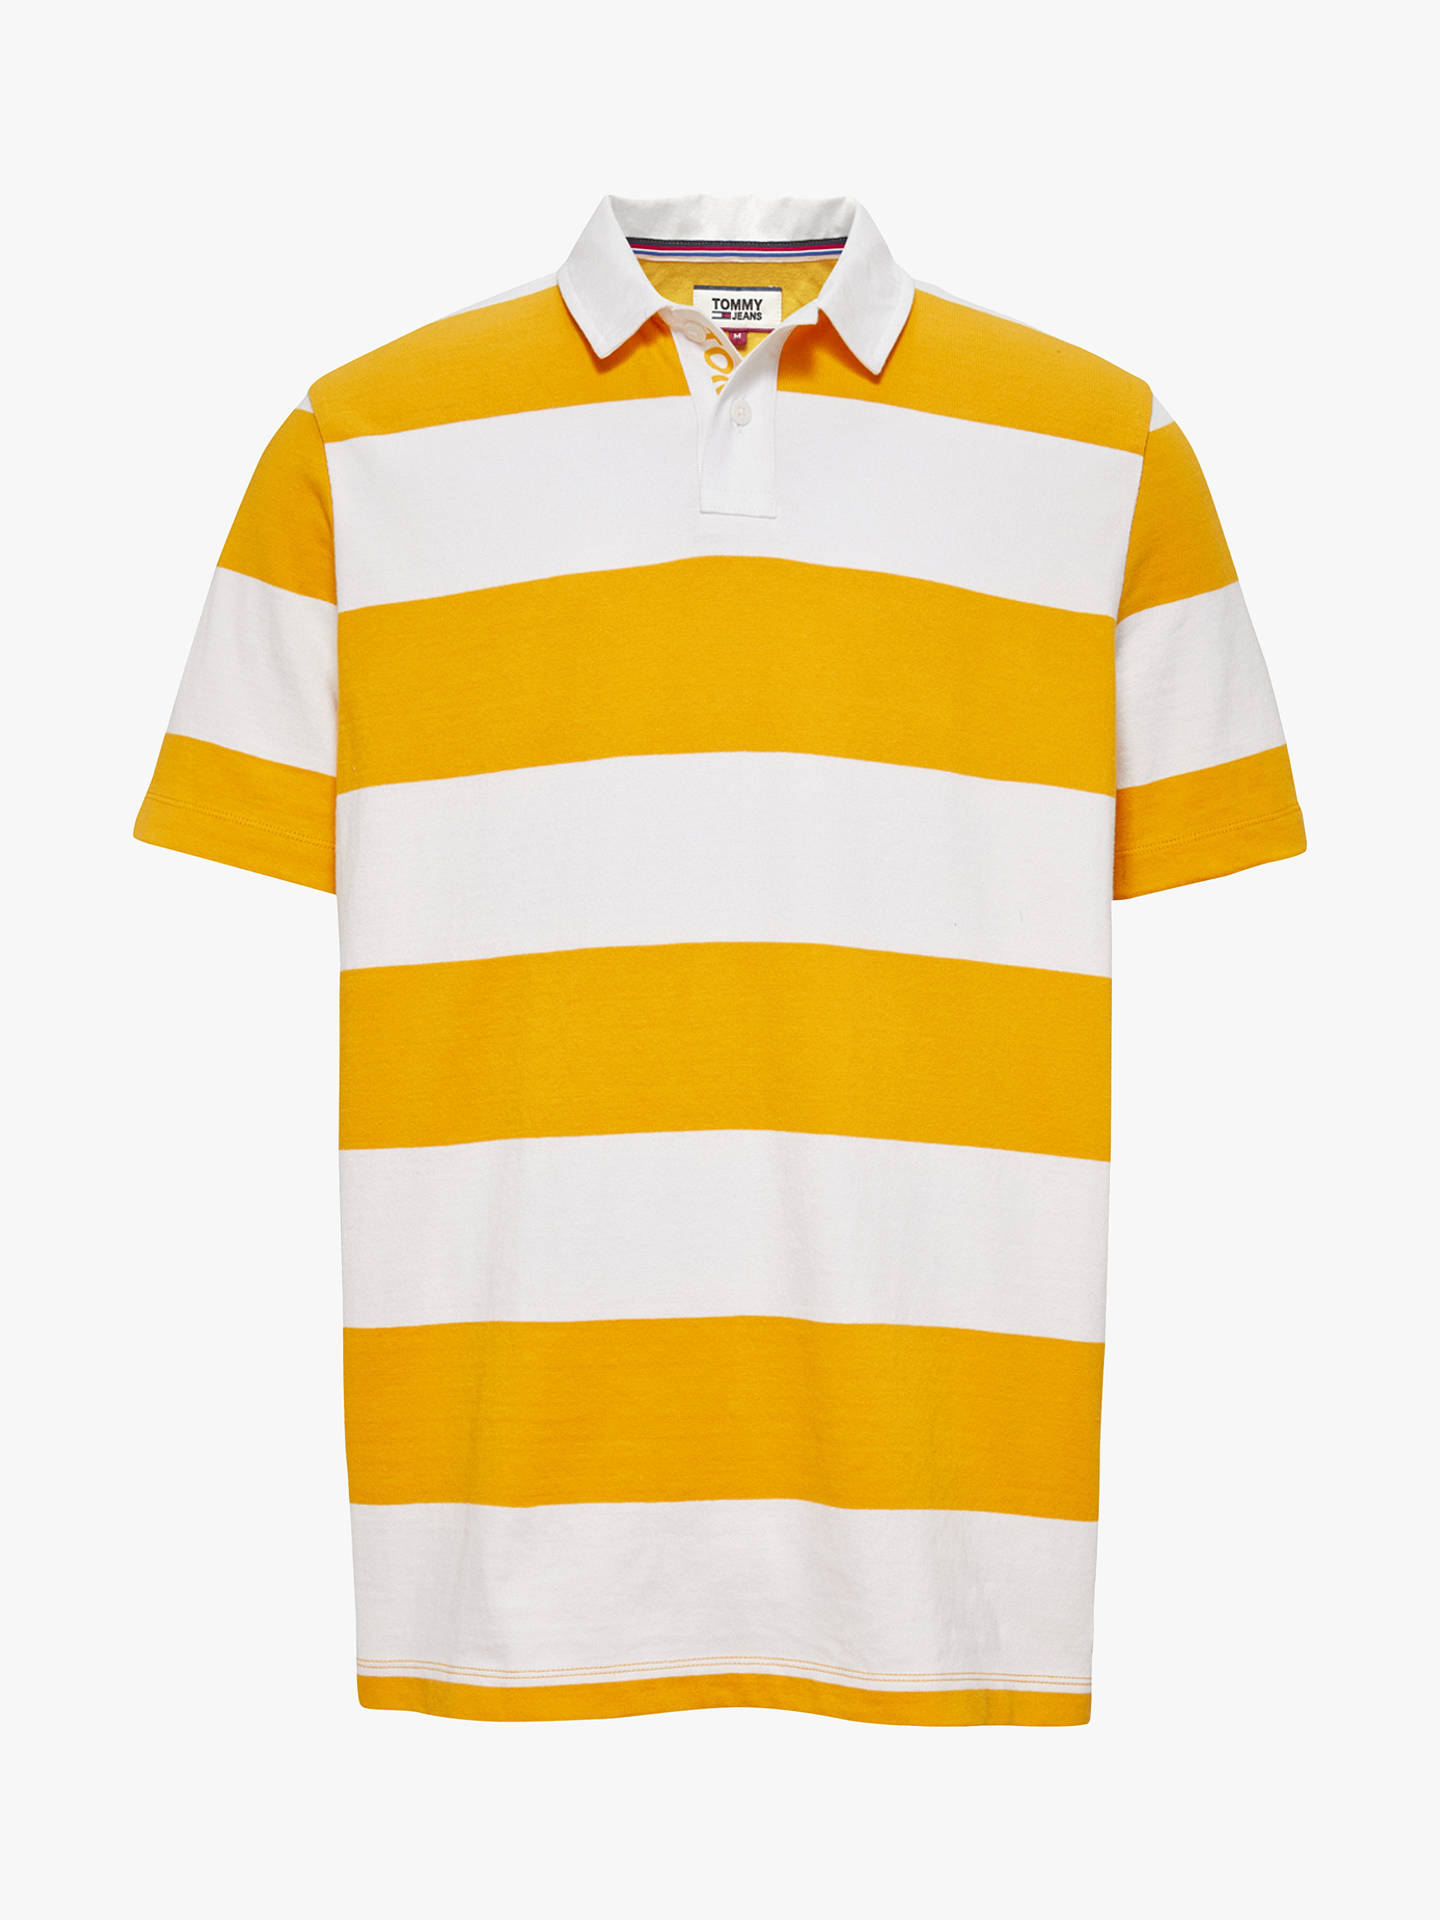 Tommy Jeans Stripe Block Rugby Shirt Yellow White At